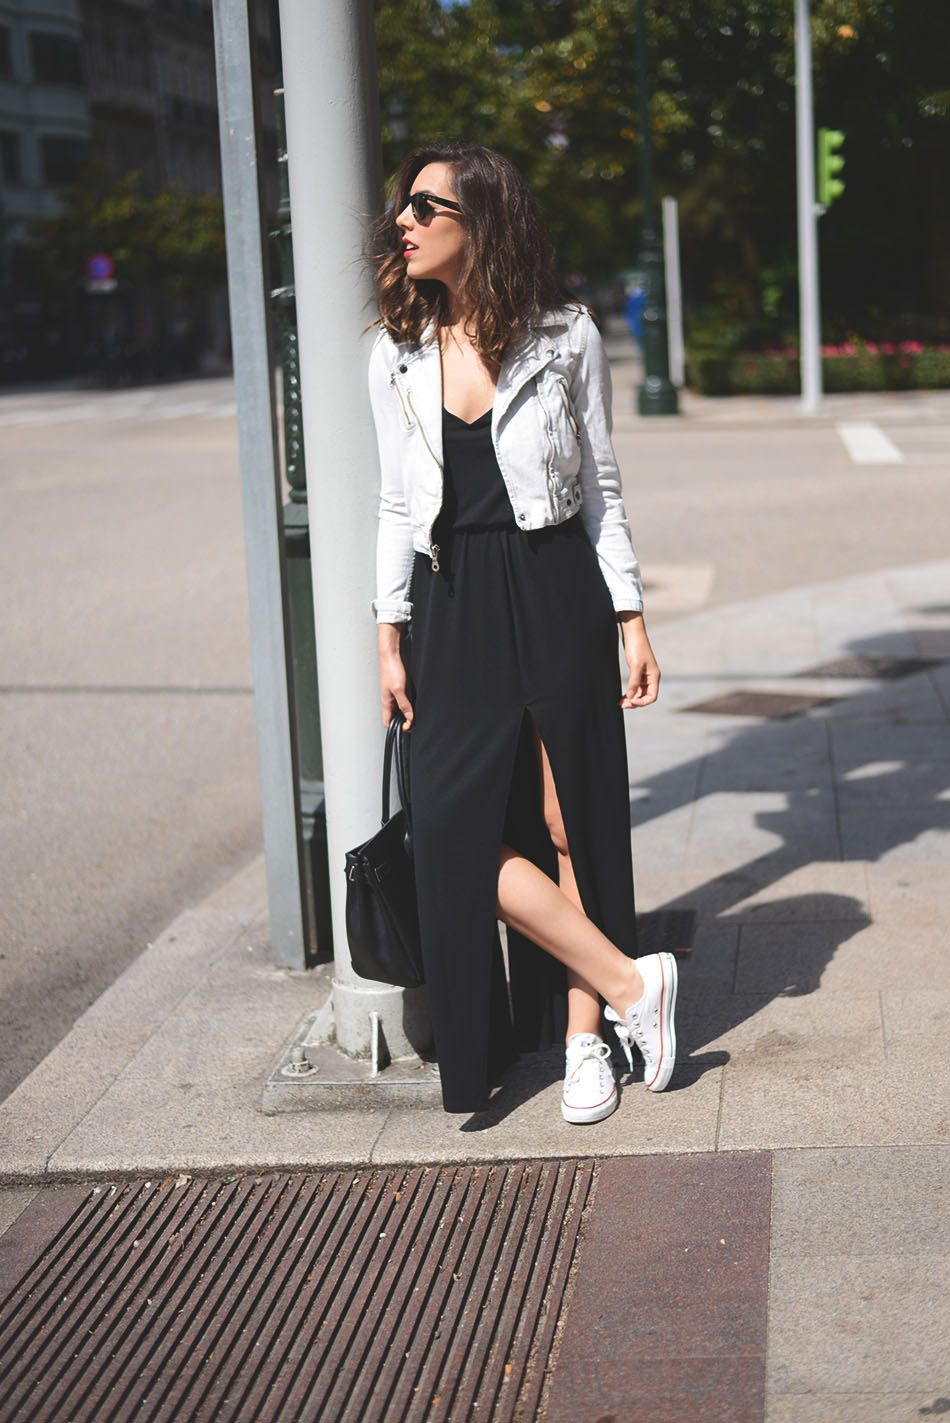 Keep it cool in a cotton maxi dress. Throw on a moto jacket for a night out.